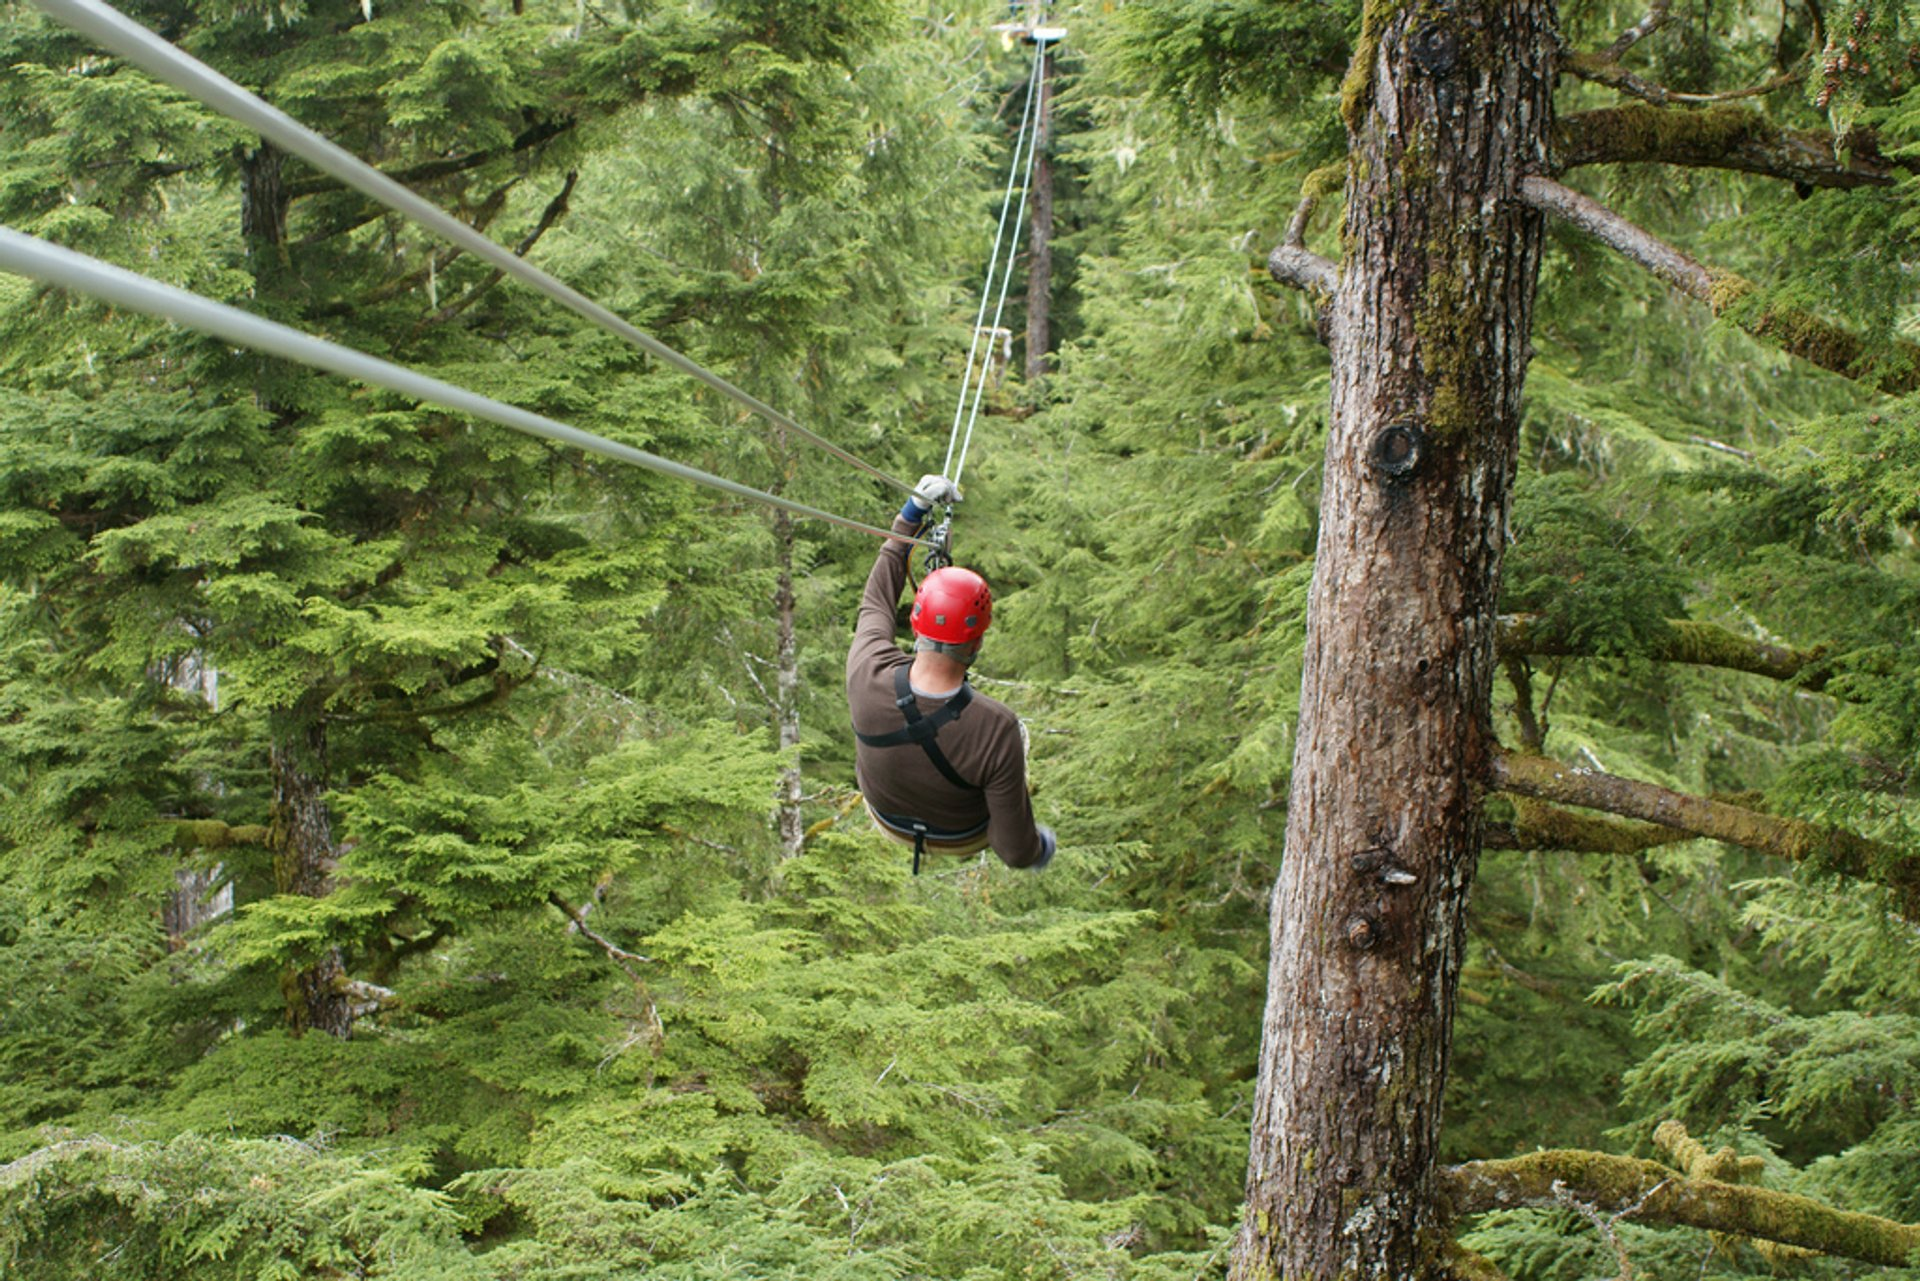 Rainforest Ziplining in Alaska 2020 - Best Time